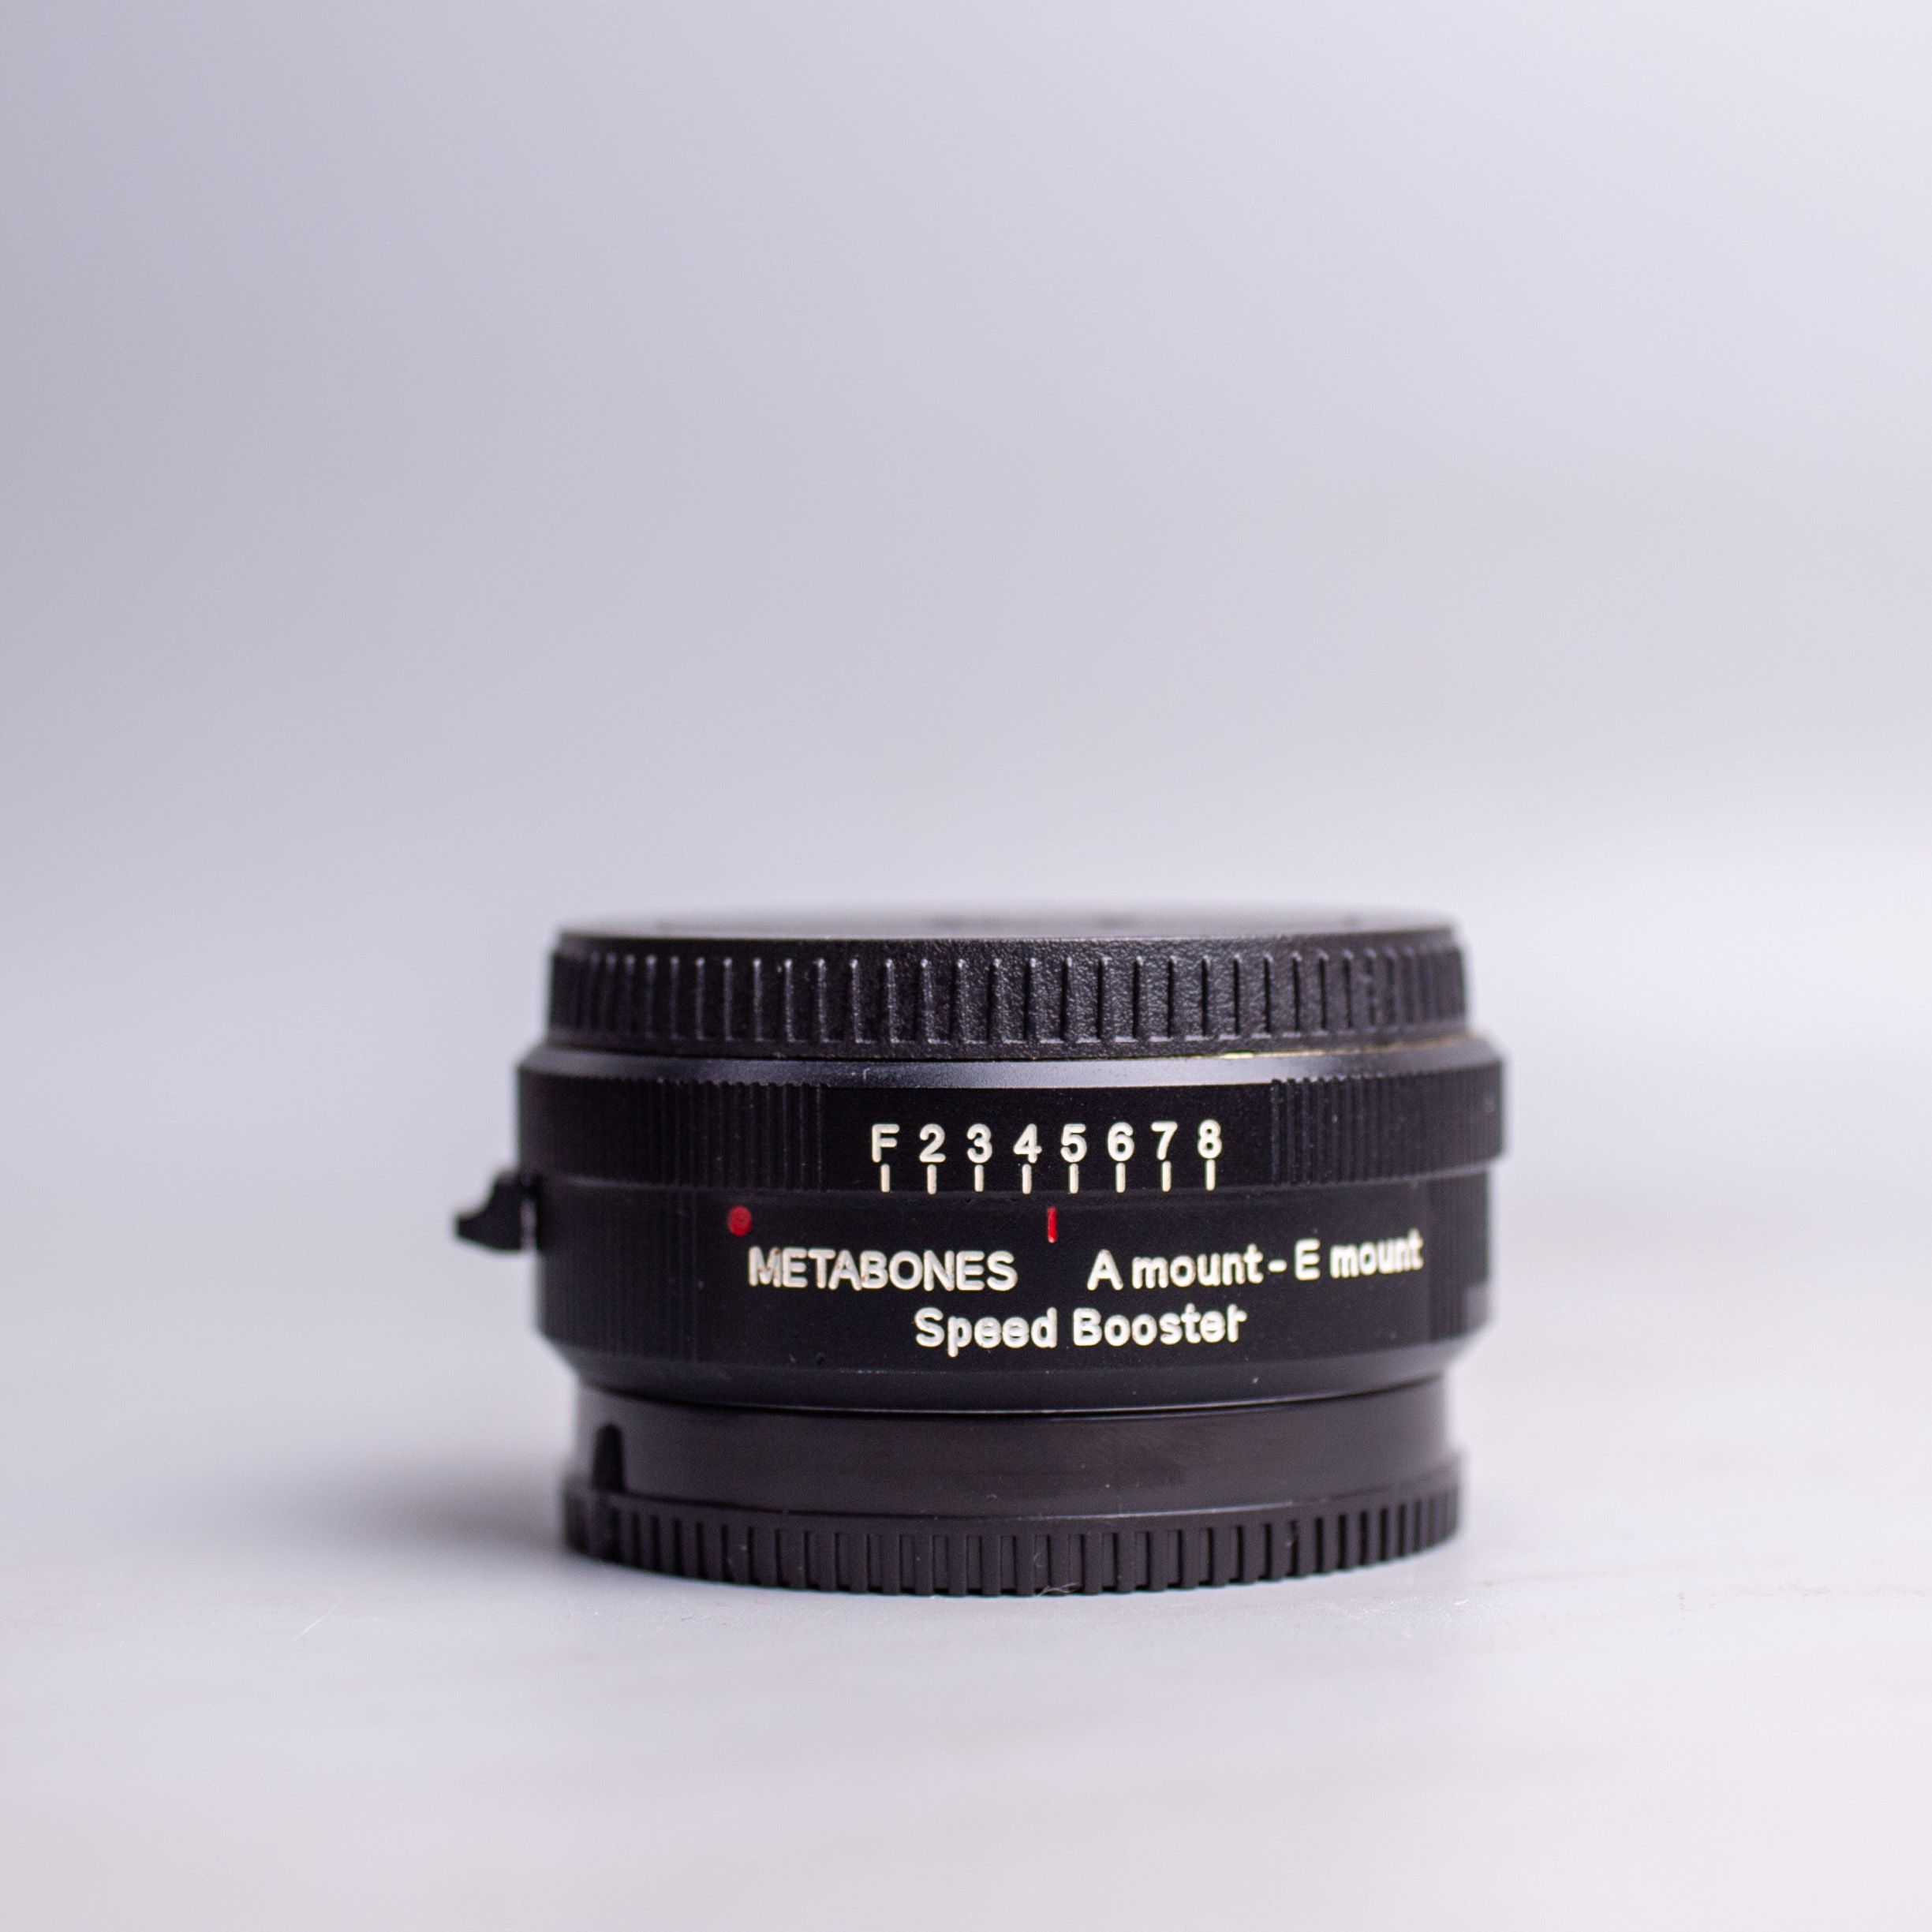 ngam-chuyen-metabones-speed-booster-sony-a-sony-e-12729